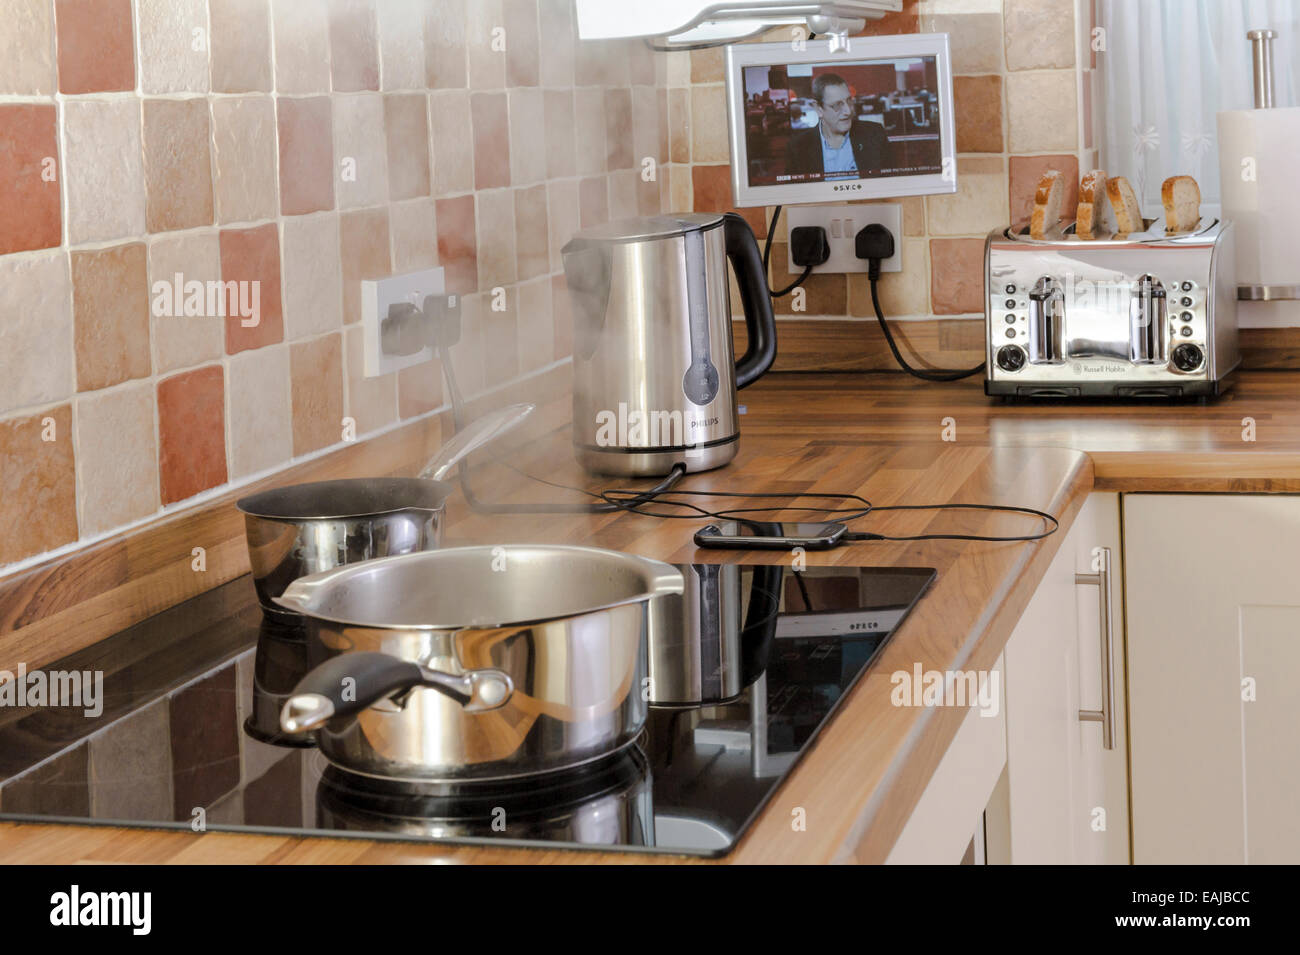 Many appliances being used in a modern kitchen.Heavy electrical consumption. - Stock Image